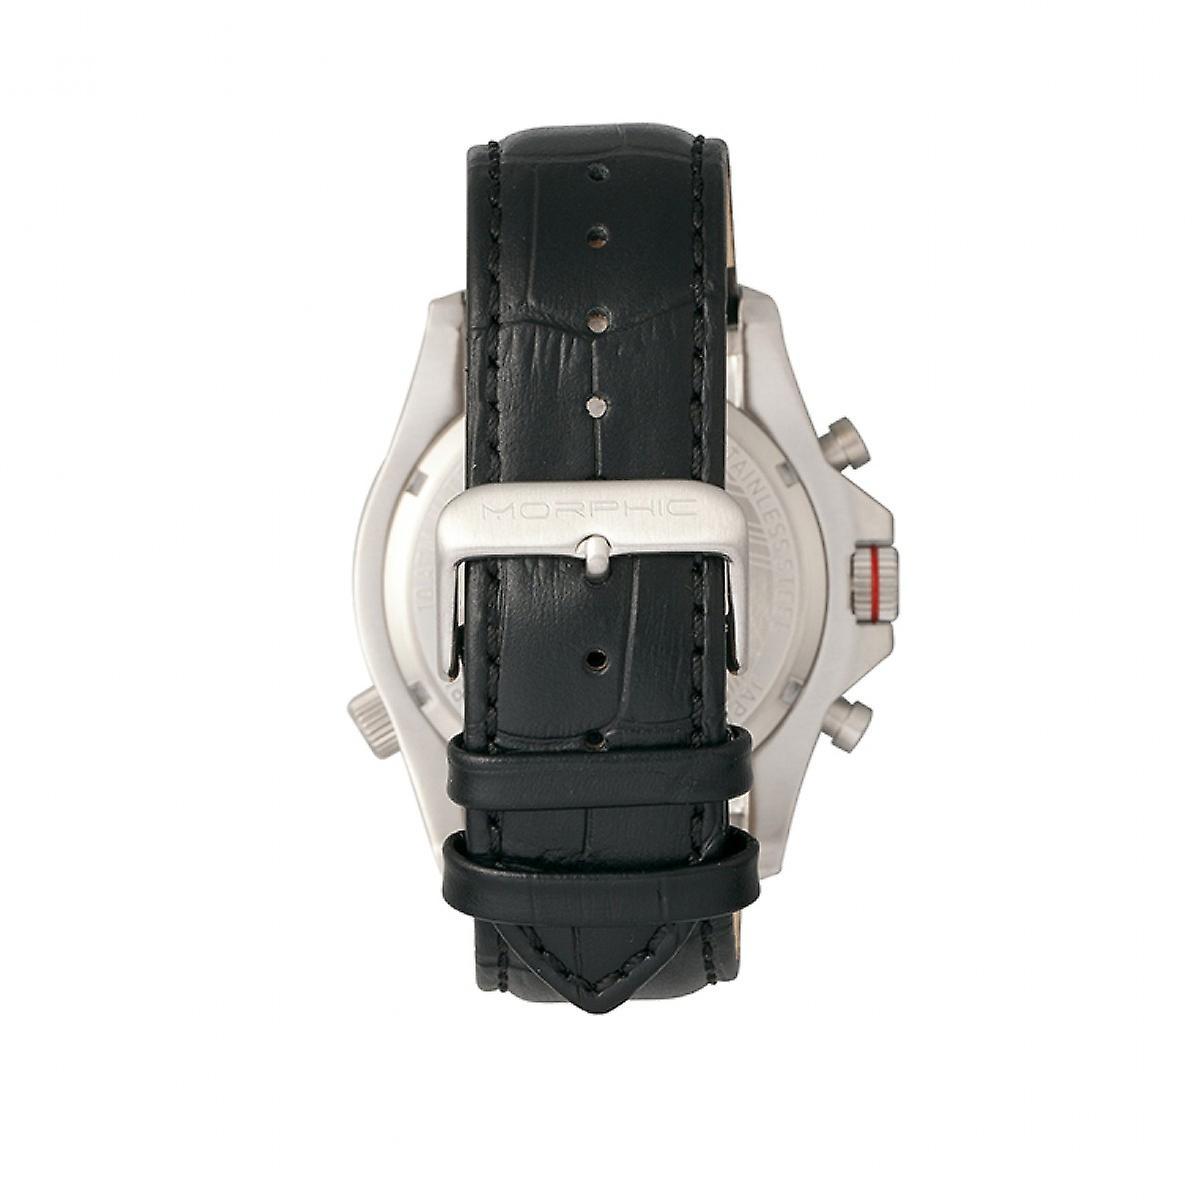 Morphic M36 Series Leather-Band Chronograph Watch - Silver/White